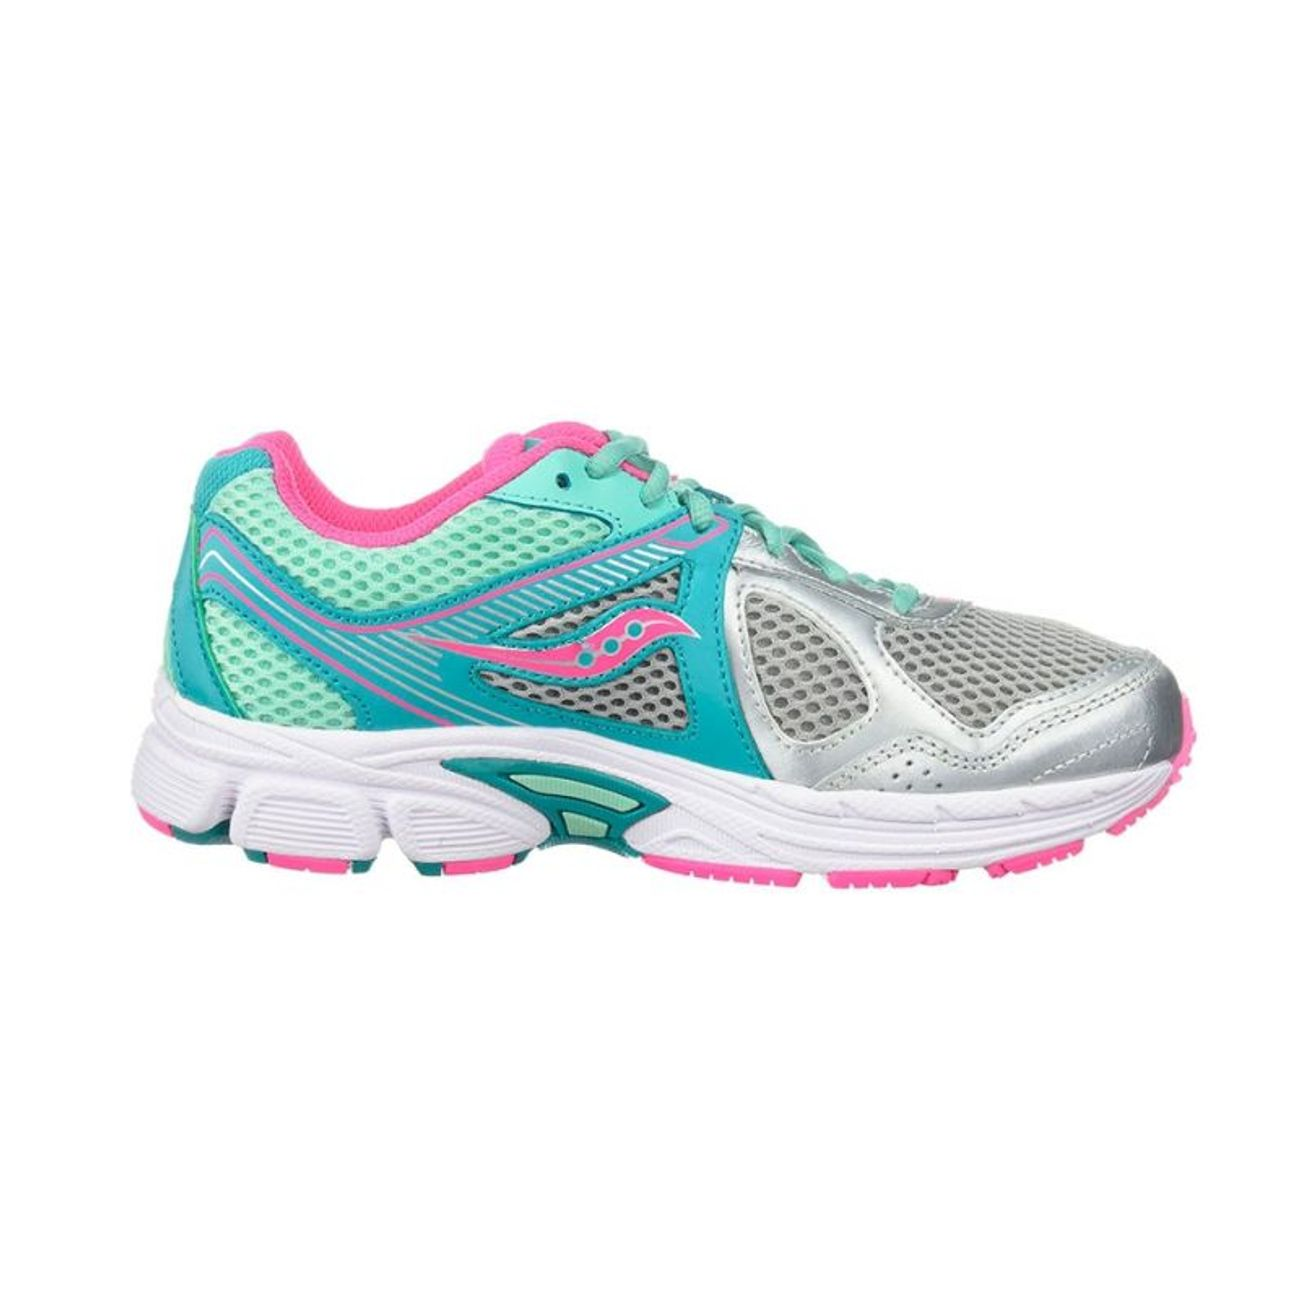 Saucony Fille Cohesion Gris K160389y Adulte 10 Padel Turquoise 6gbf7yY